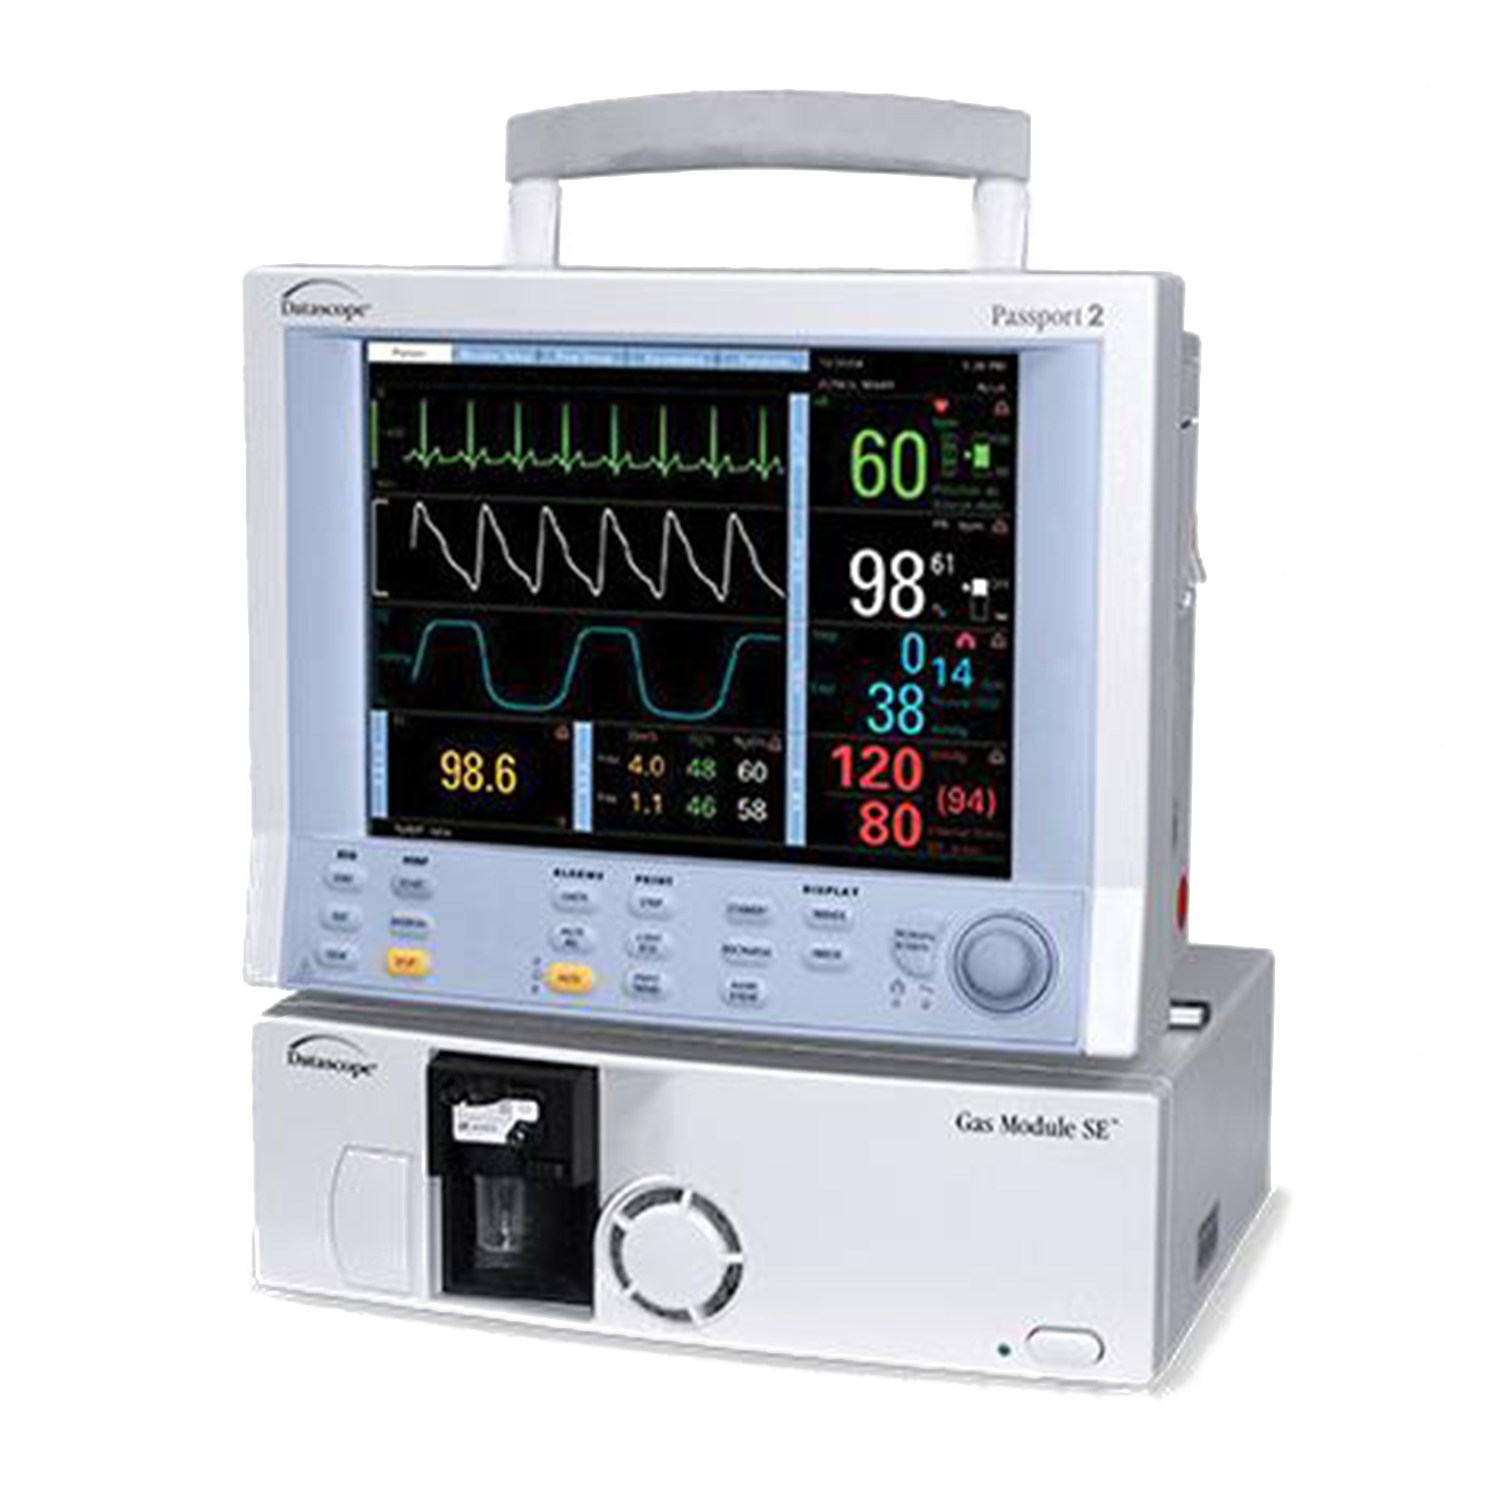 Datascope Passport 2 Patient Monitor with Gas Module SE